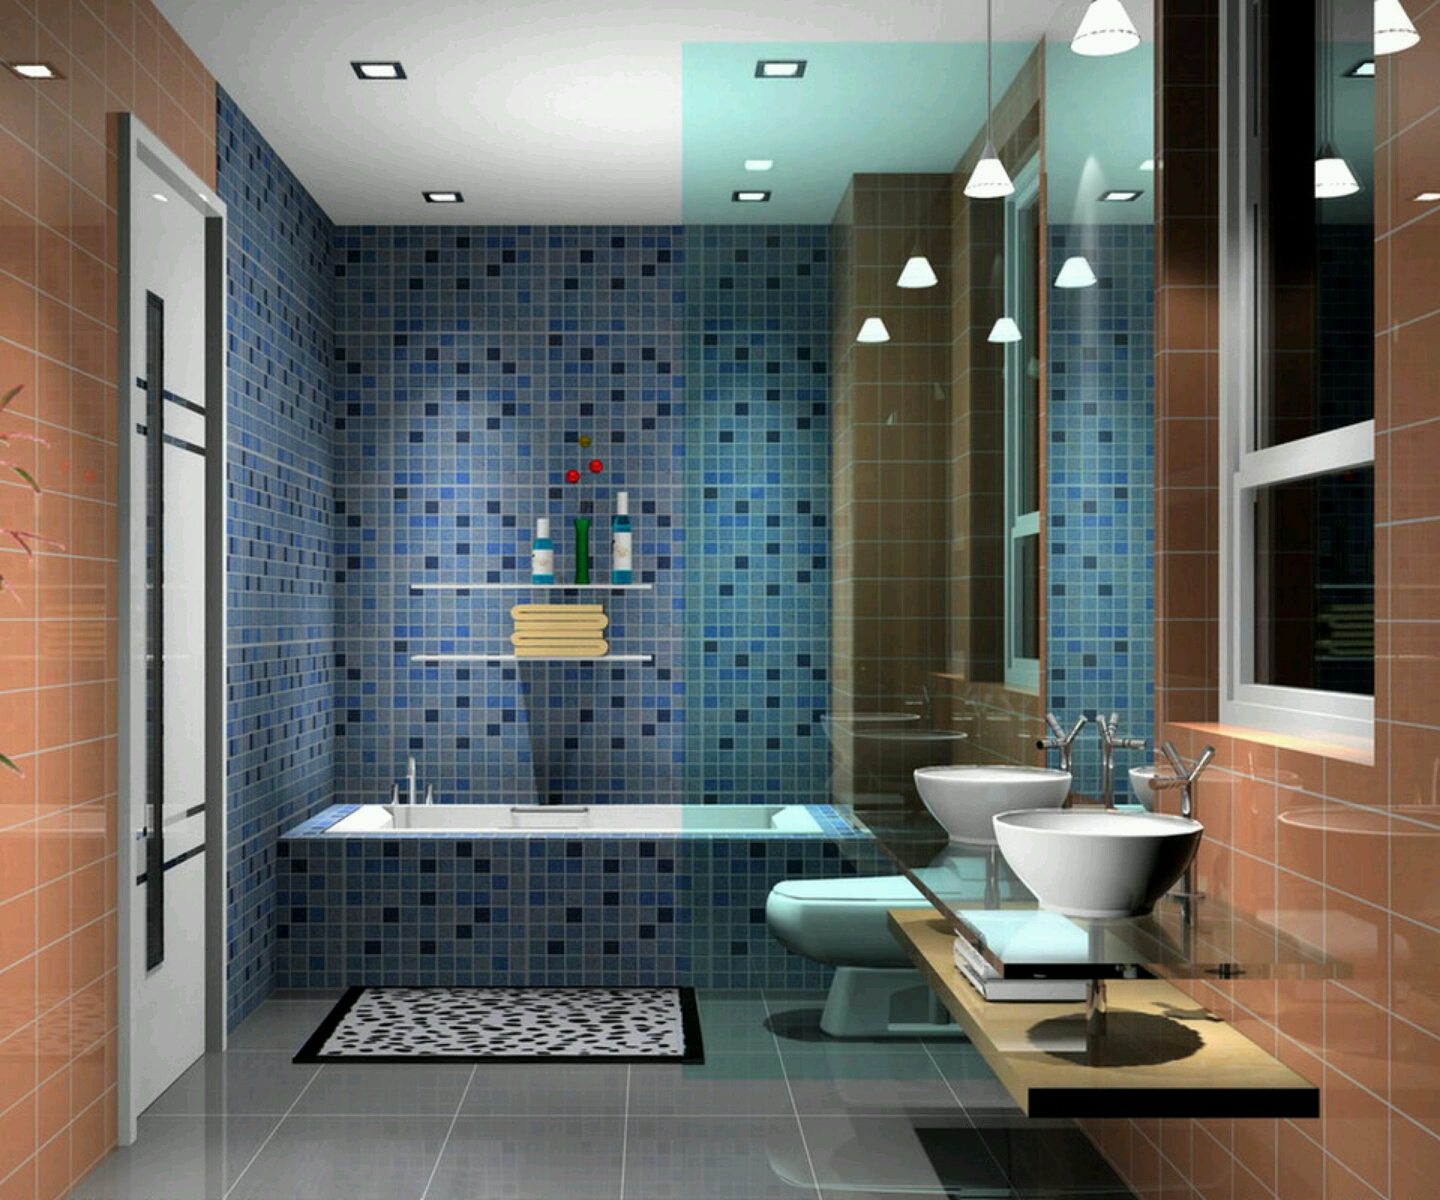 Design with blue tile floor ideas for swimming pool designs for small - Modern Bathrooms Best Designs Ideas